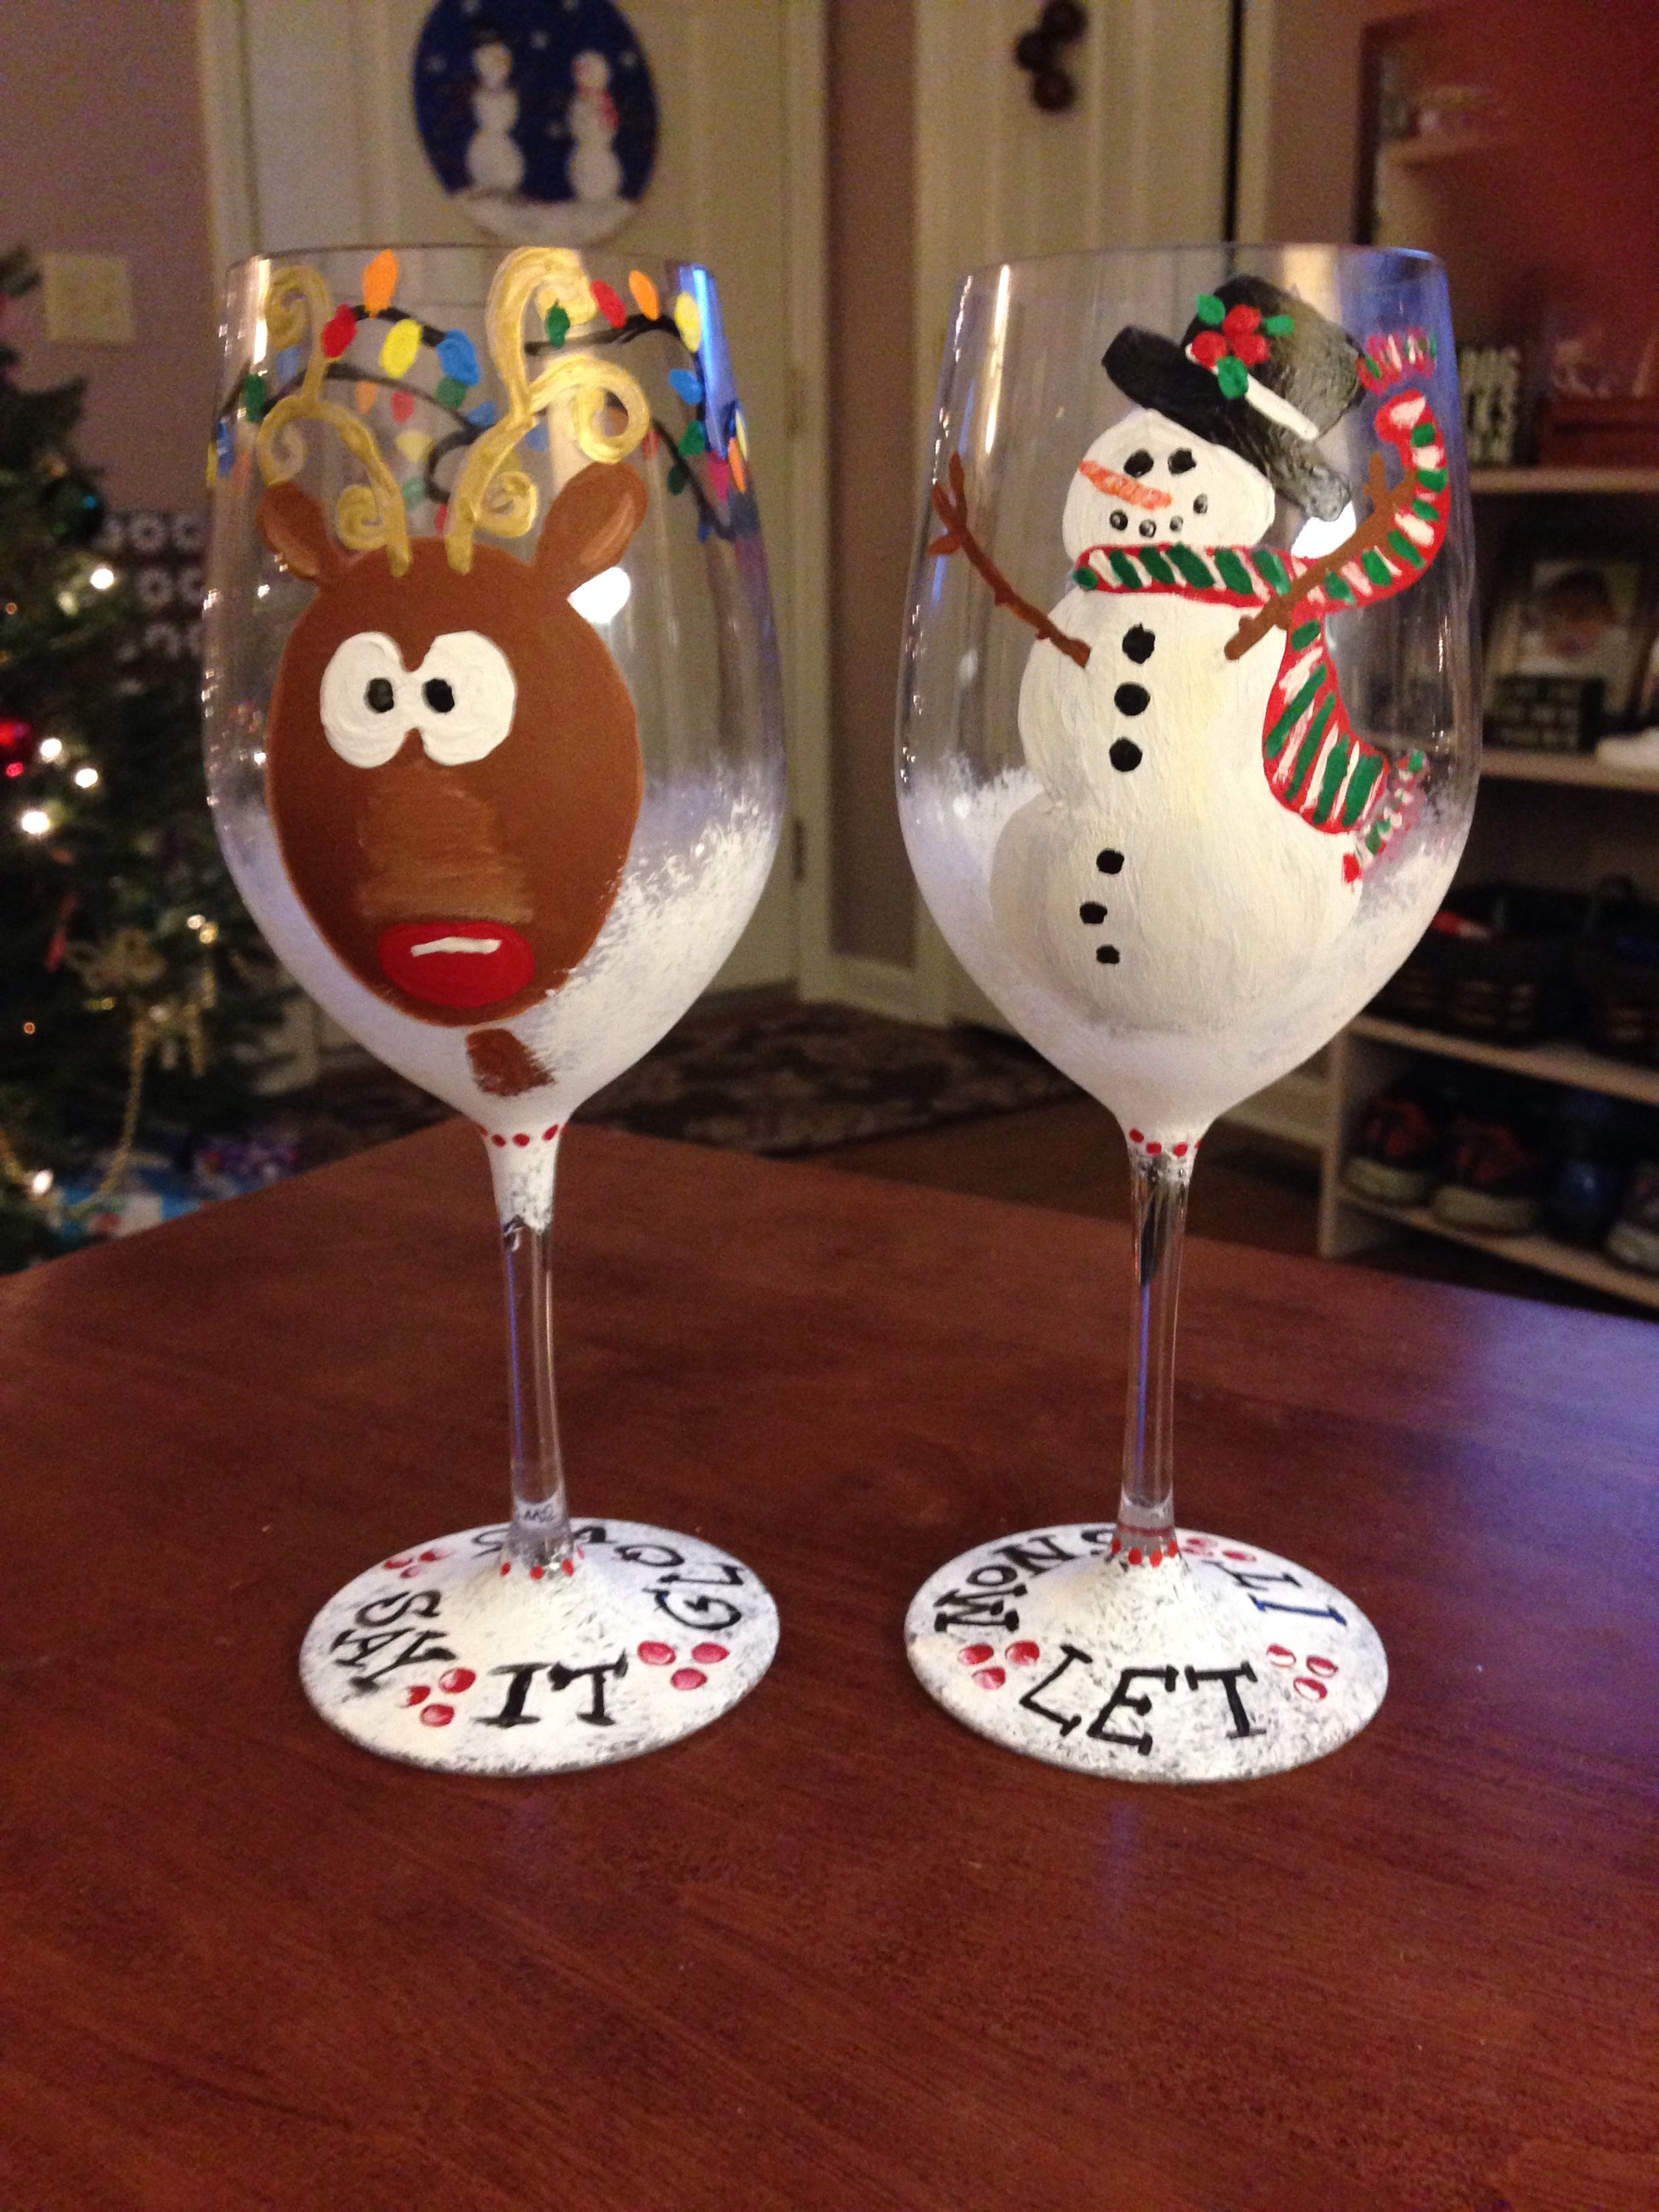 Wine Training Wine Glasses Wine Tips At Justwineguide Com Christmas Wine Glasses Painted Wine Glasses Christmas Christmas Wine Bottles